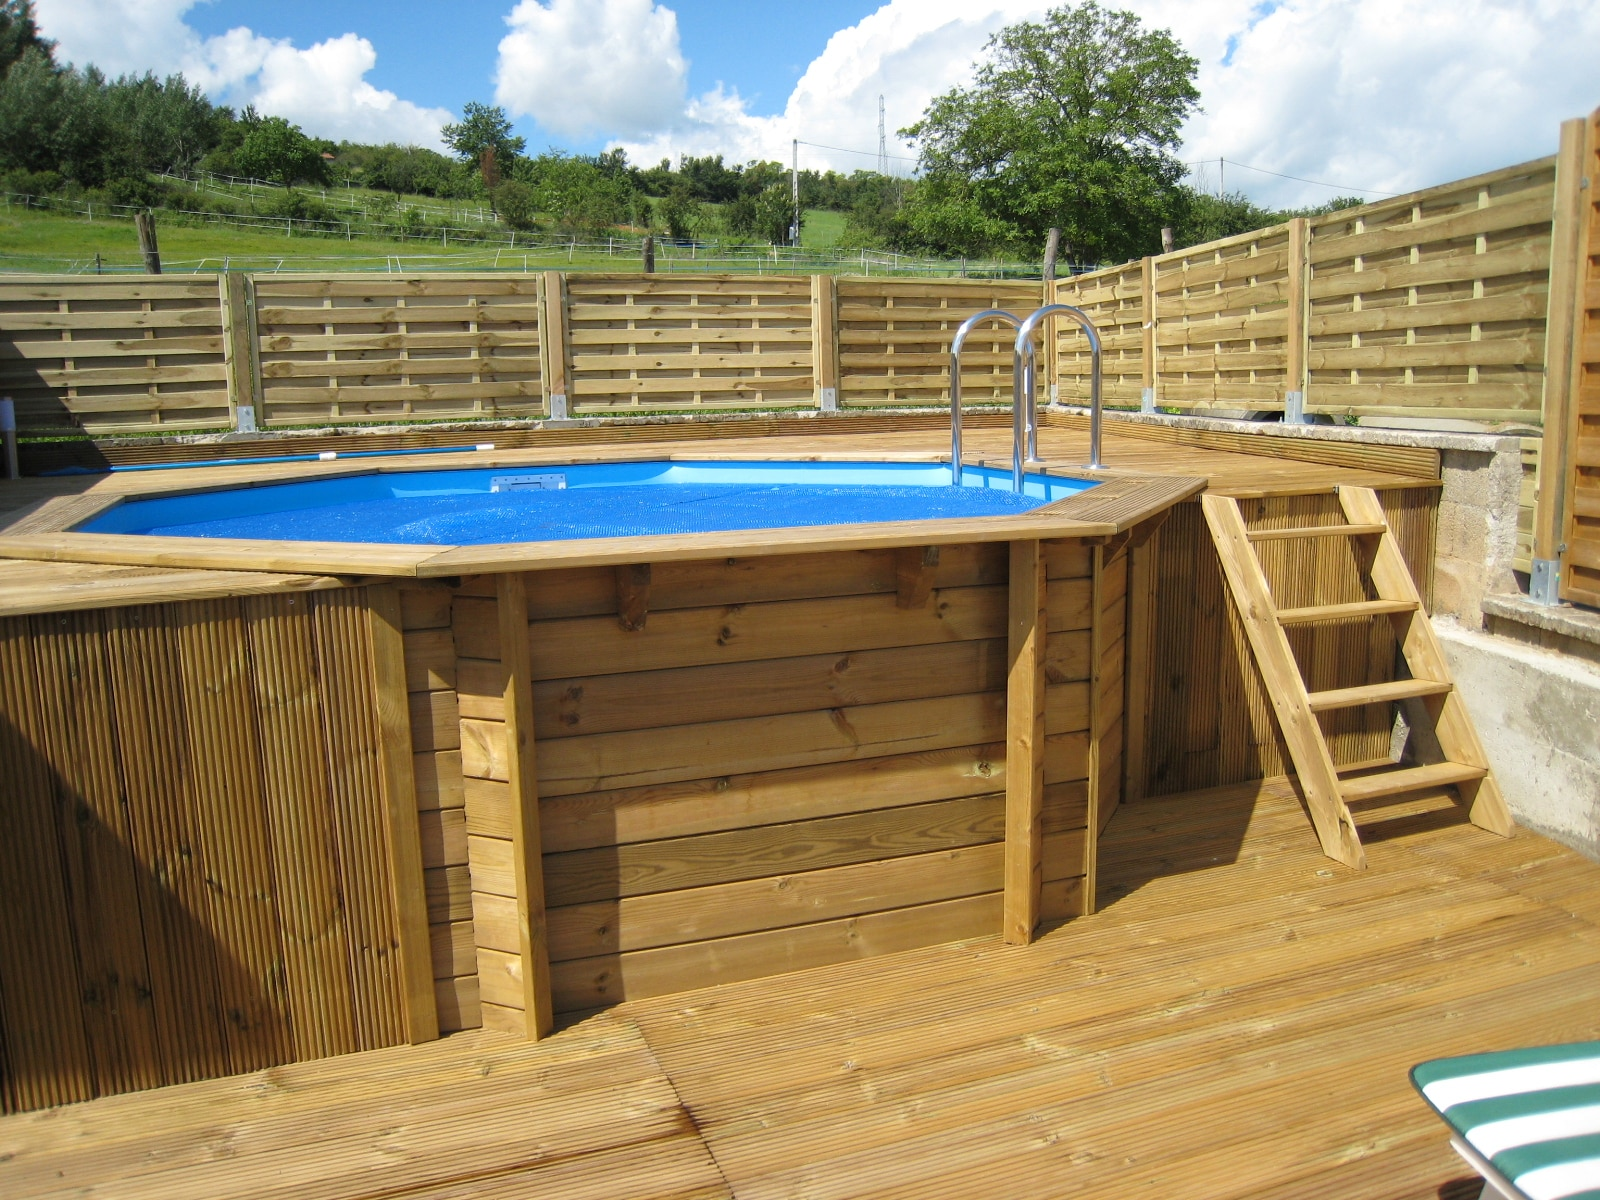 Piscine en bois interesting with piscine en bois piscine for Piscine en kit bois